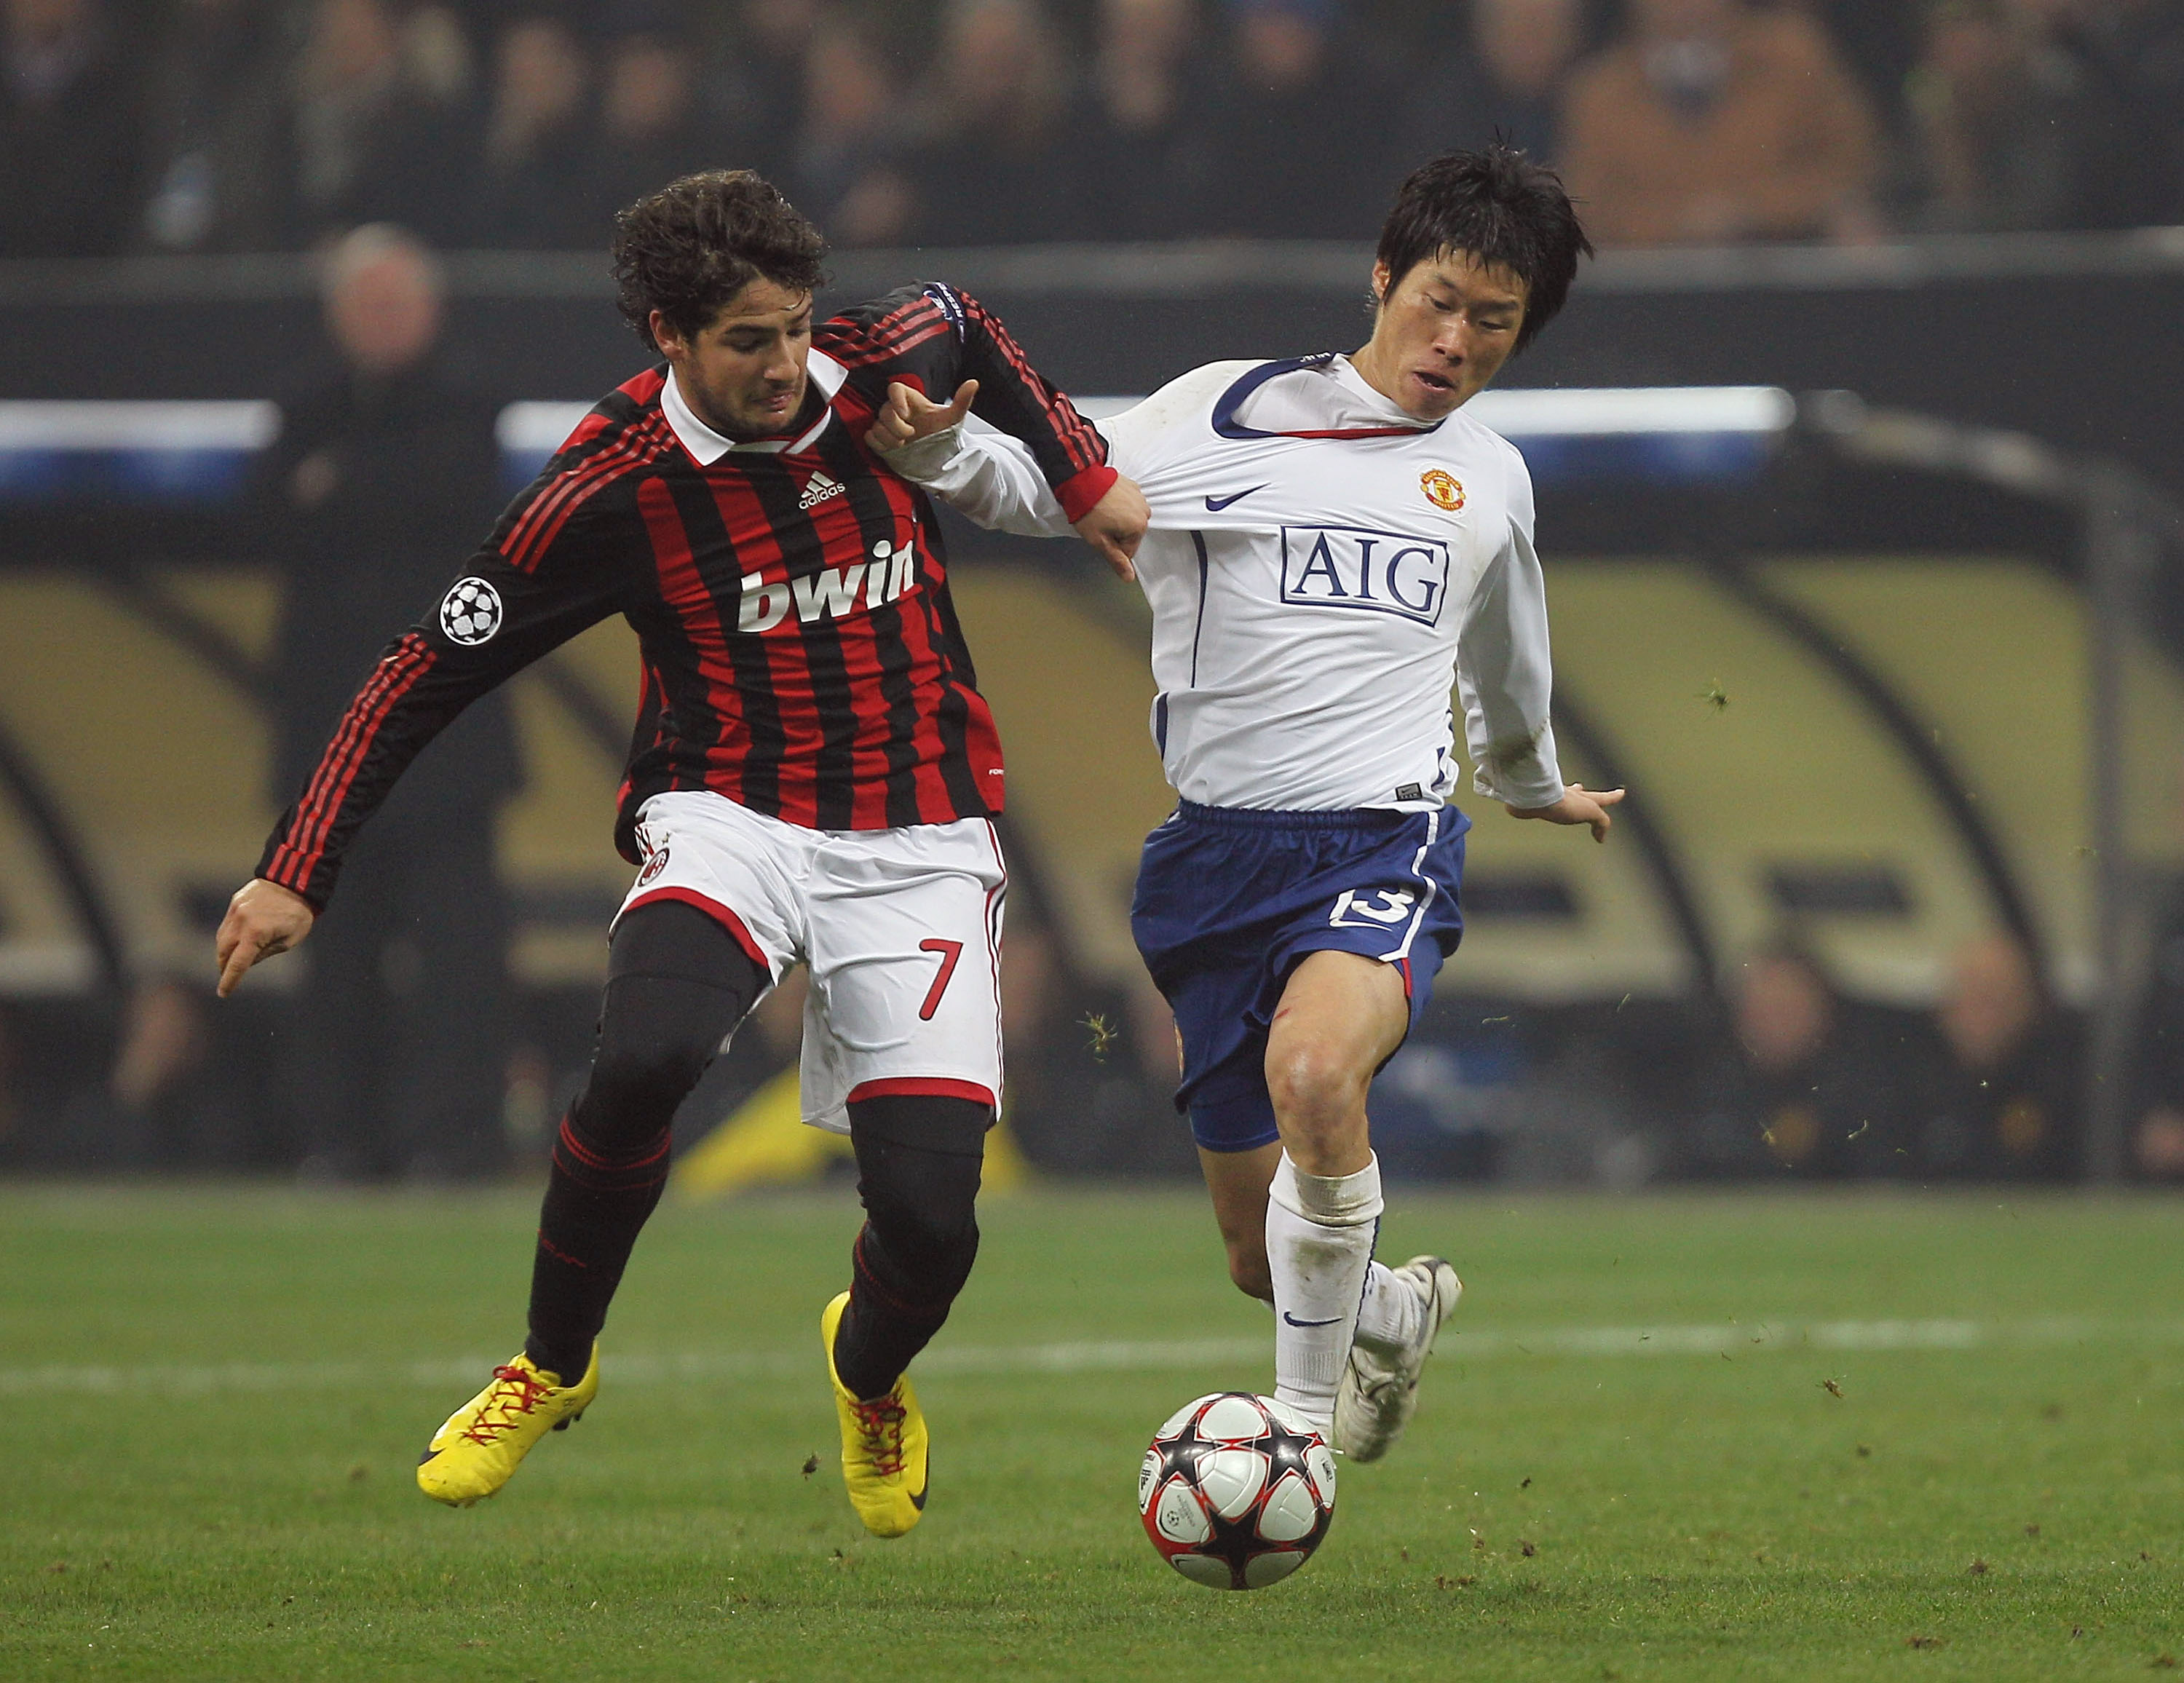 MILAN, ITALY - FEBRUARY 16:  Ji-Sung Park (R) of Manchester United contests with Pato of AC Milan during the UEFA Champions League round of 16 first leg match between AC Milan and Manchester United at Stadio Giuseppe Meazza on February 16, 2010 in Milan,